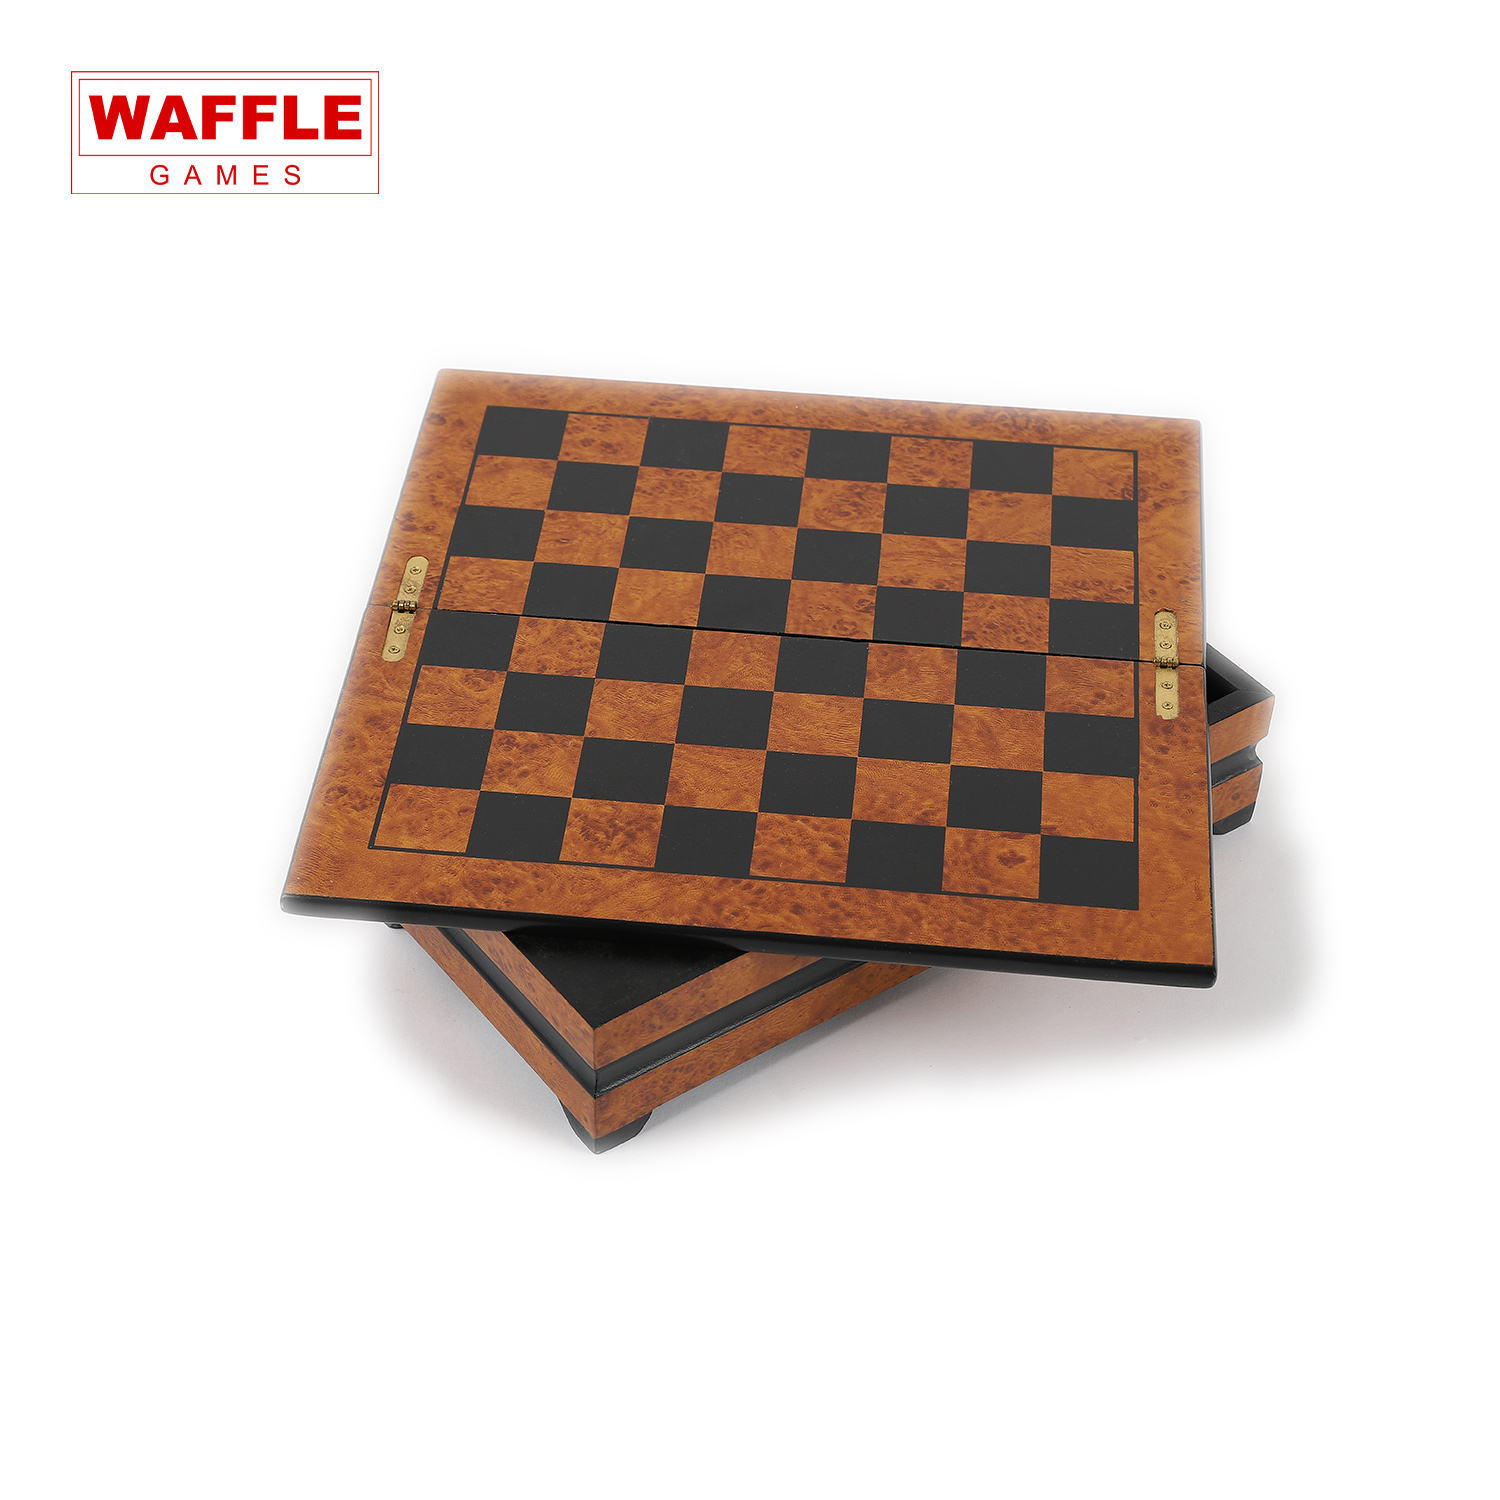 WG Deluxe Wooden Chess Game Set With Hand Crafted Chess Pieces